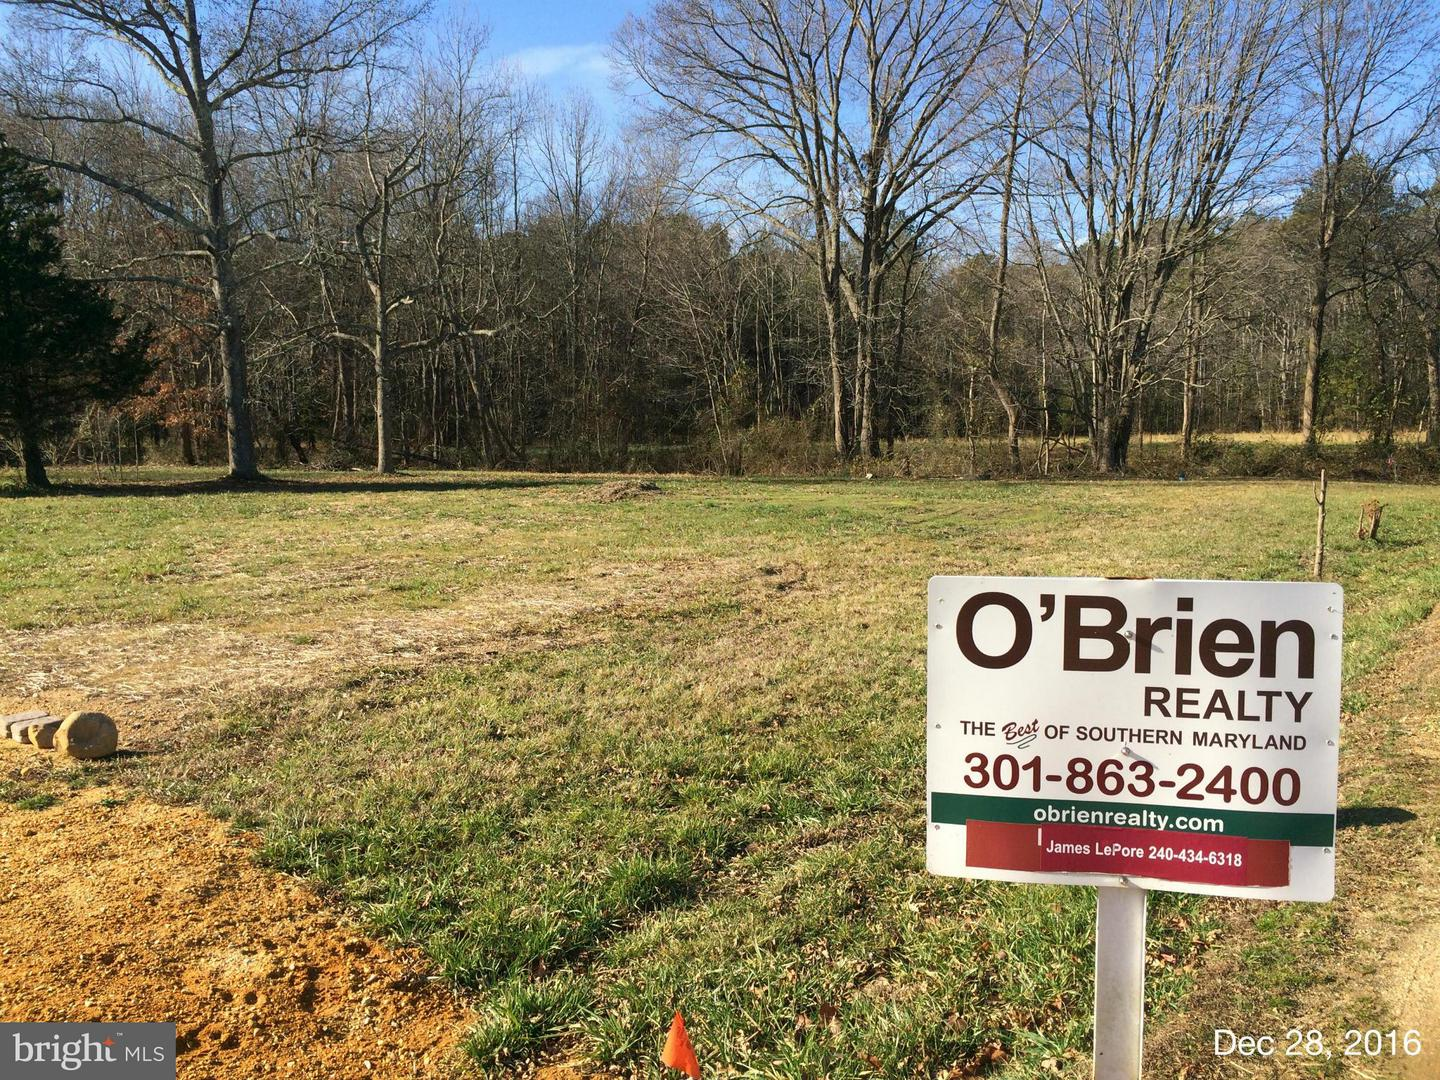 Land for Sale at 18443 Windmill Point Rd Drayden, Maryland 20630 United States